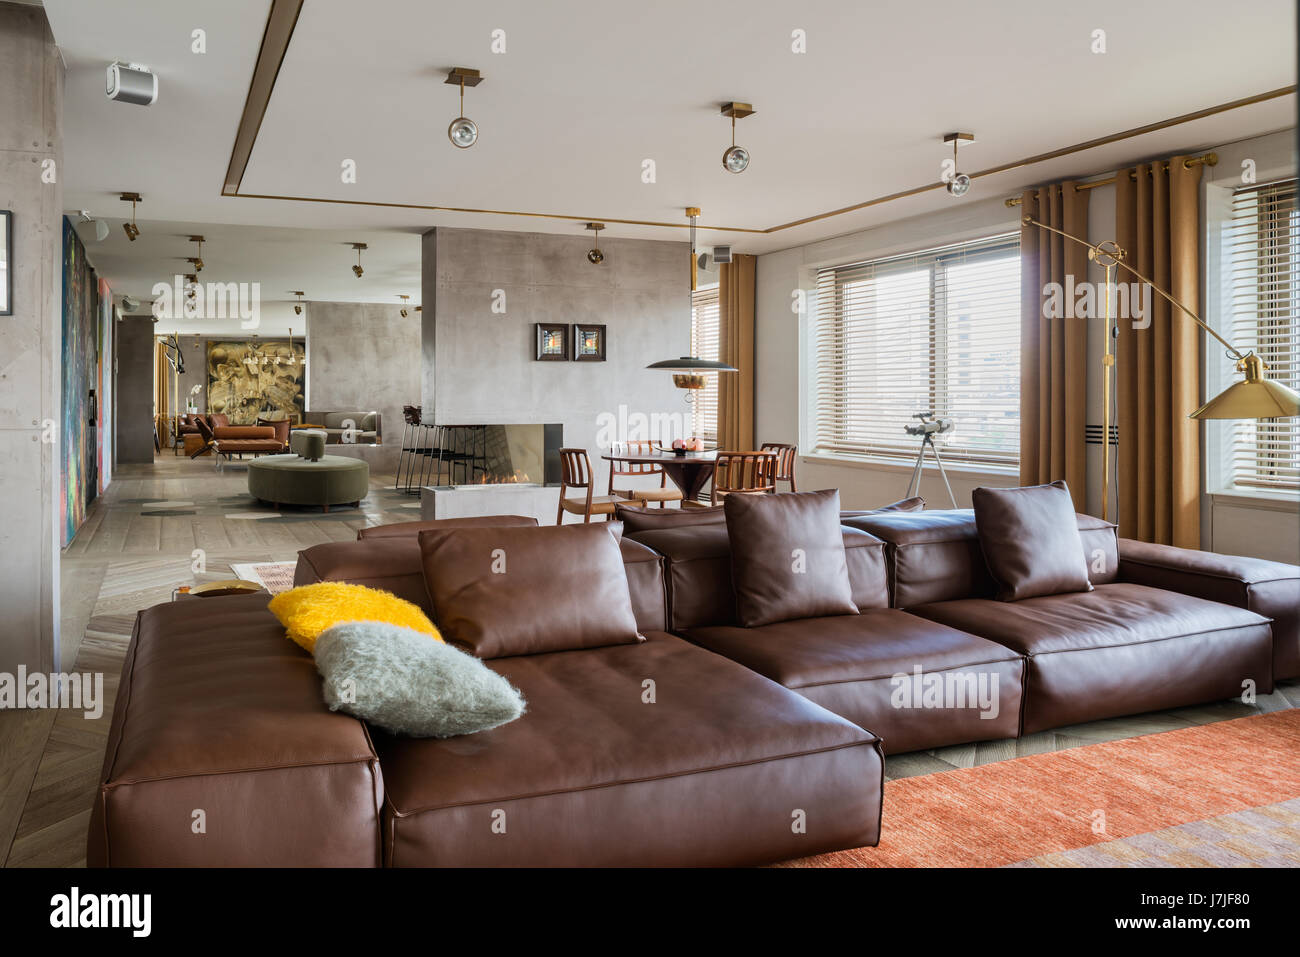 Istanbul apartment Informal seating and dining area in 30 meter living space - Stock Image